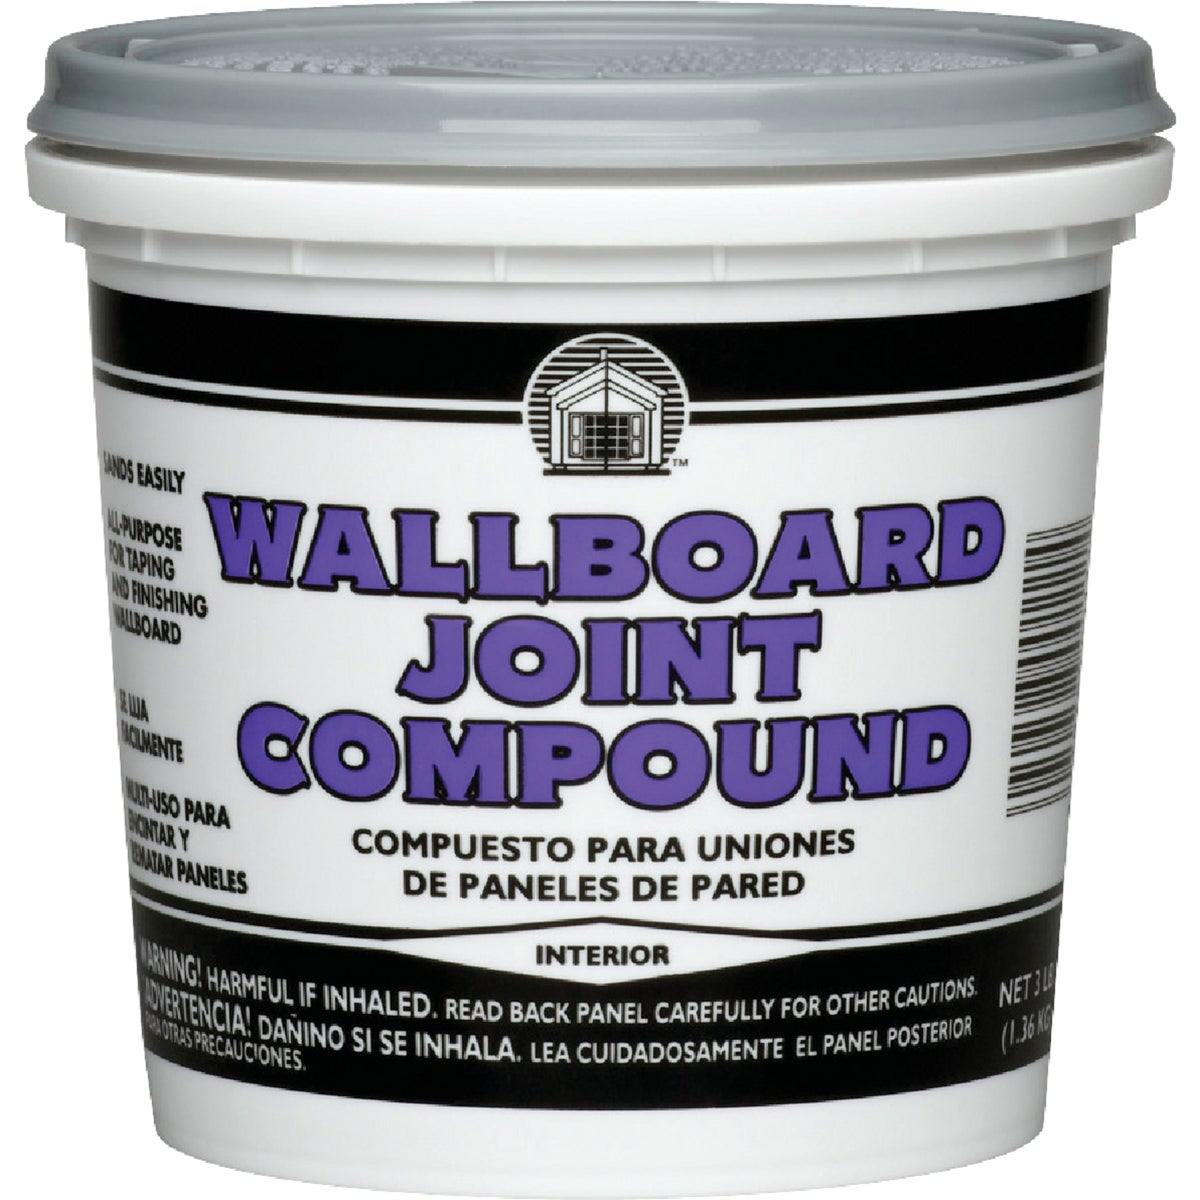 3LB WLBRD JOINT COMPOUND - 14111 by Dap Inc